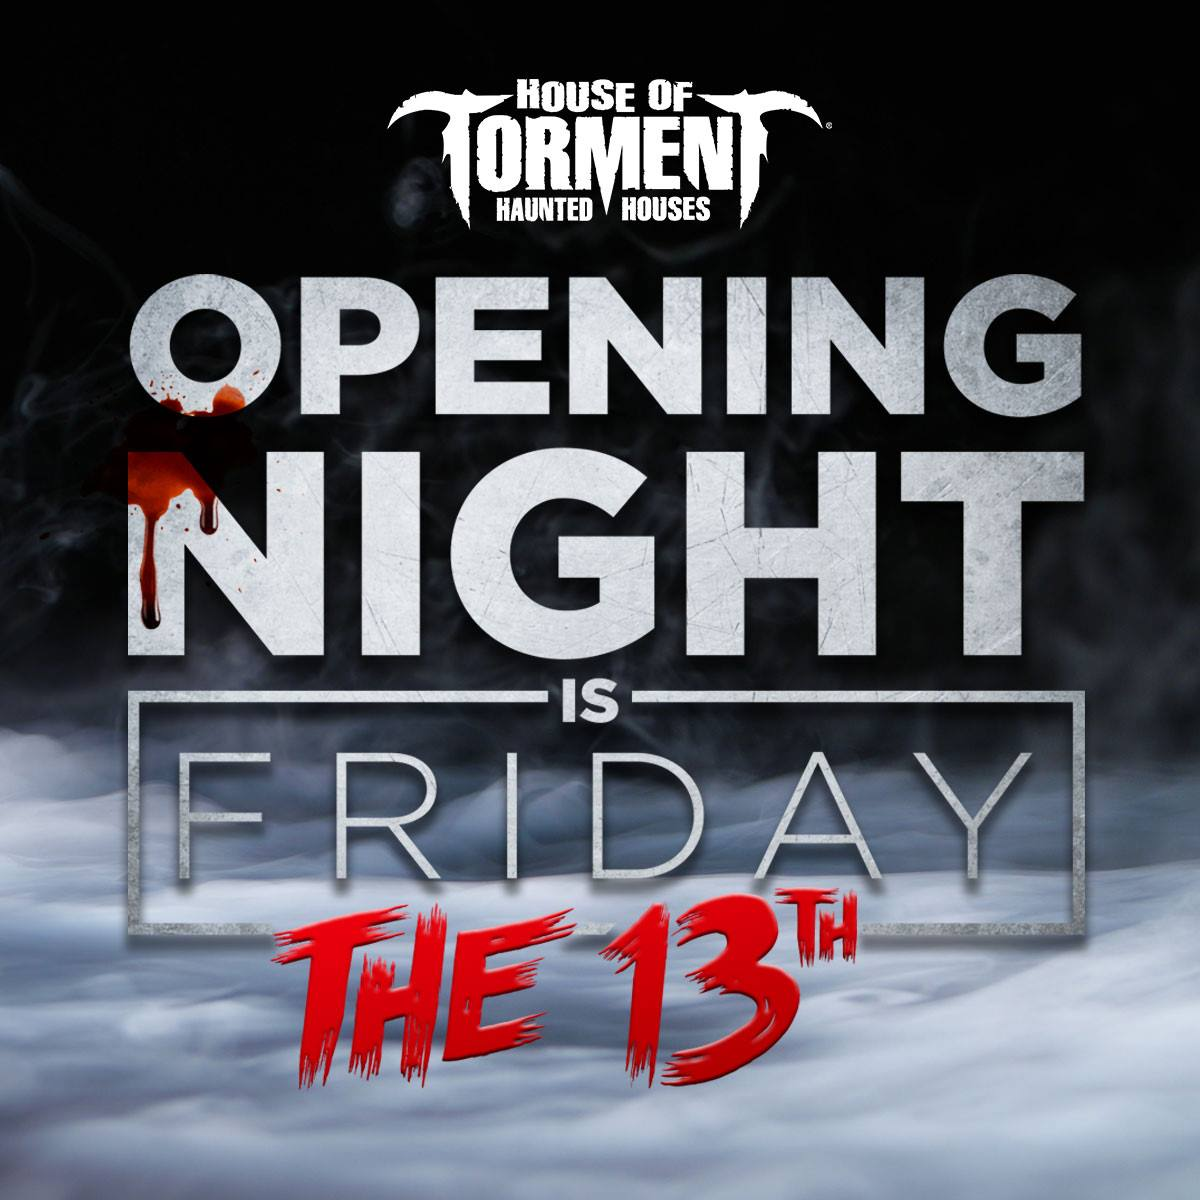 House of Torment Opening Night